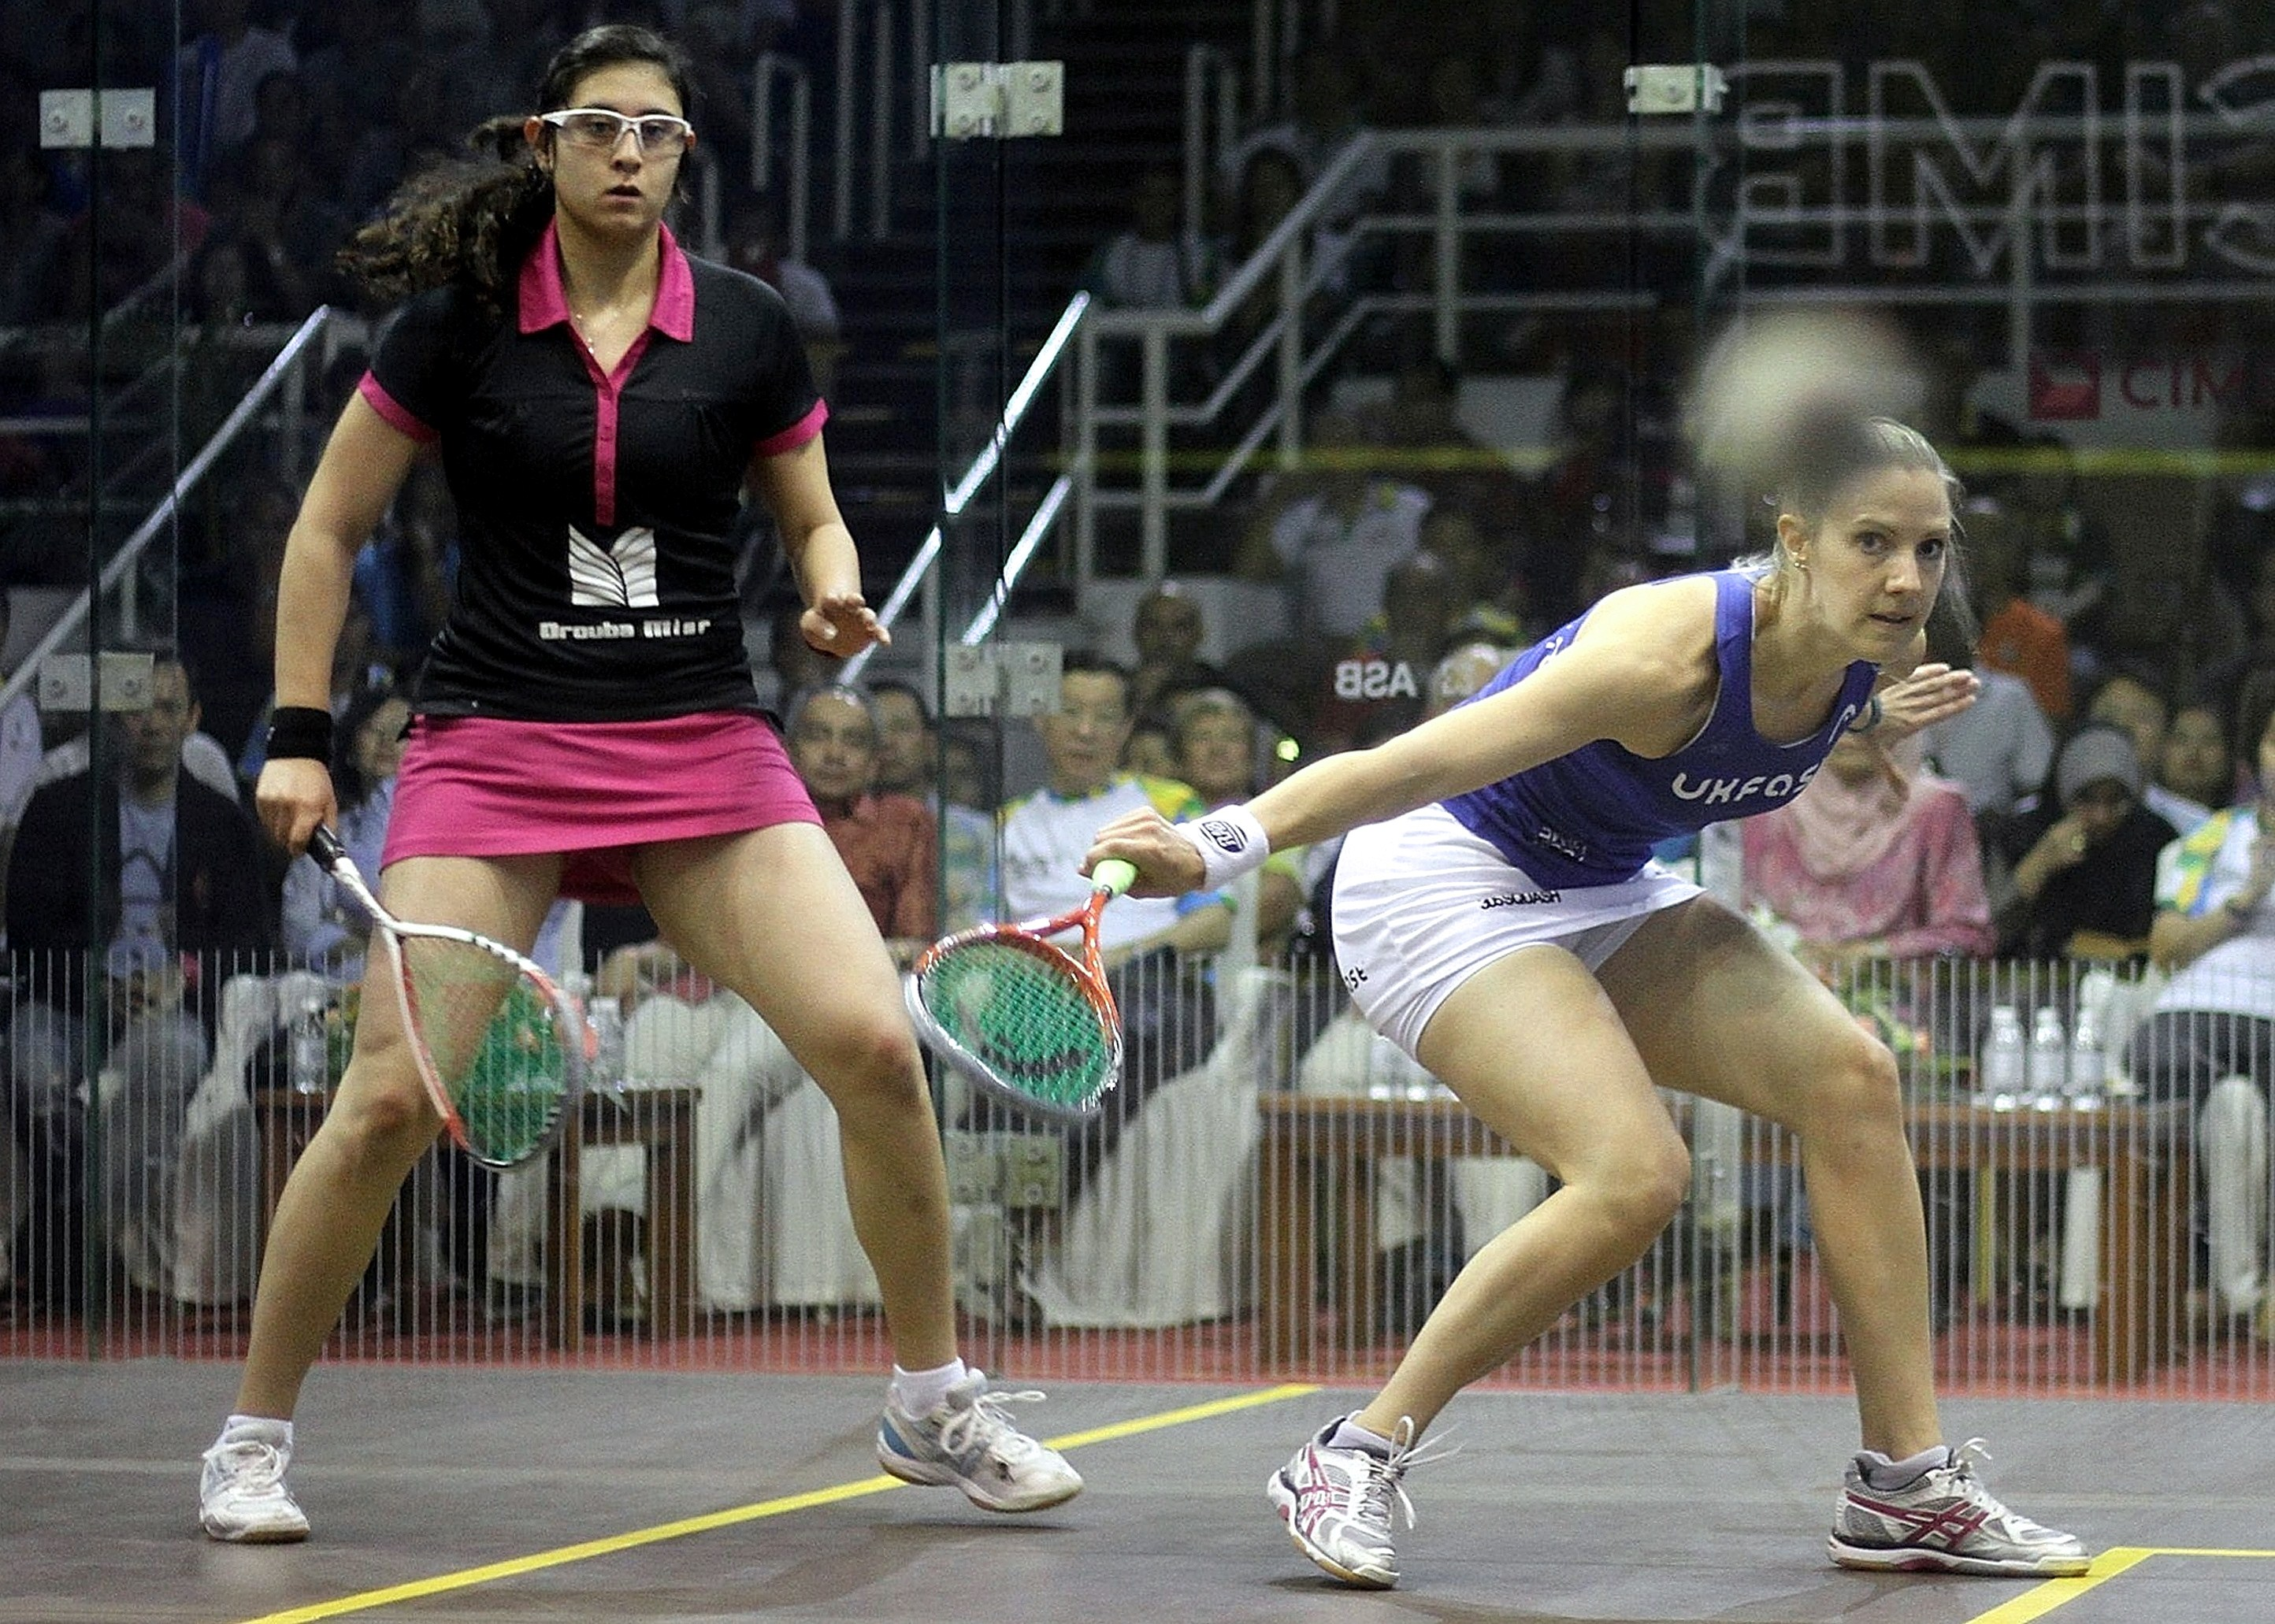 England's Laura Massaro (R) returns a shot against Nour El Sherbini of Egypt (L) during the CIMB Women's World Championship squash final against Nour El Sherbini of Egypt at the Spice Arena in Georgetown on March 23, 2014. Massaro won 11-7, 6-11, 11-9, 5-11, 11-9.      (AFP PHOTO)